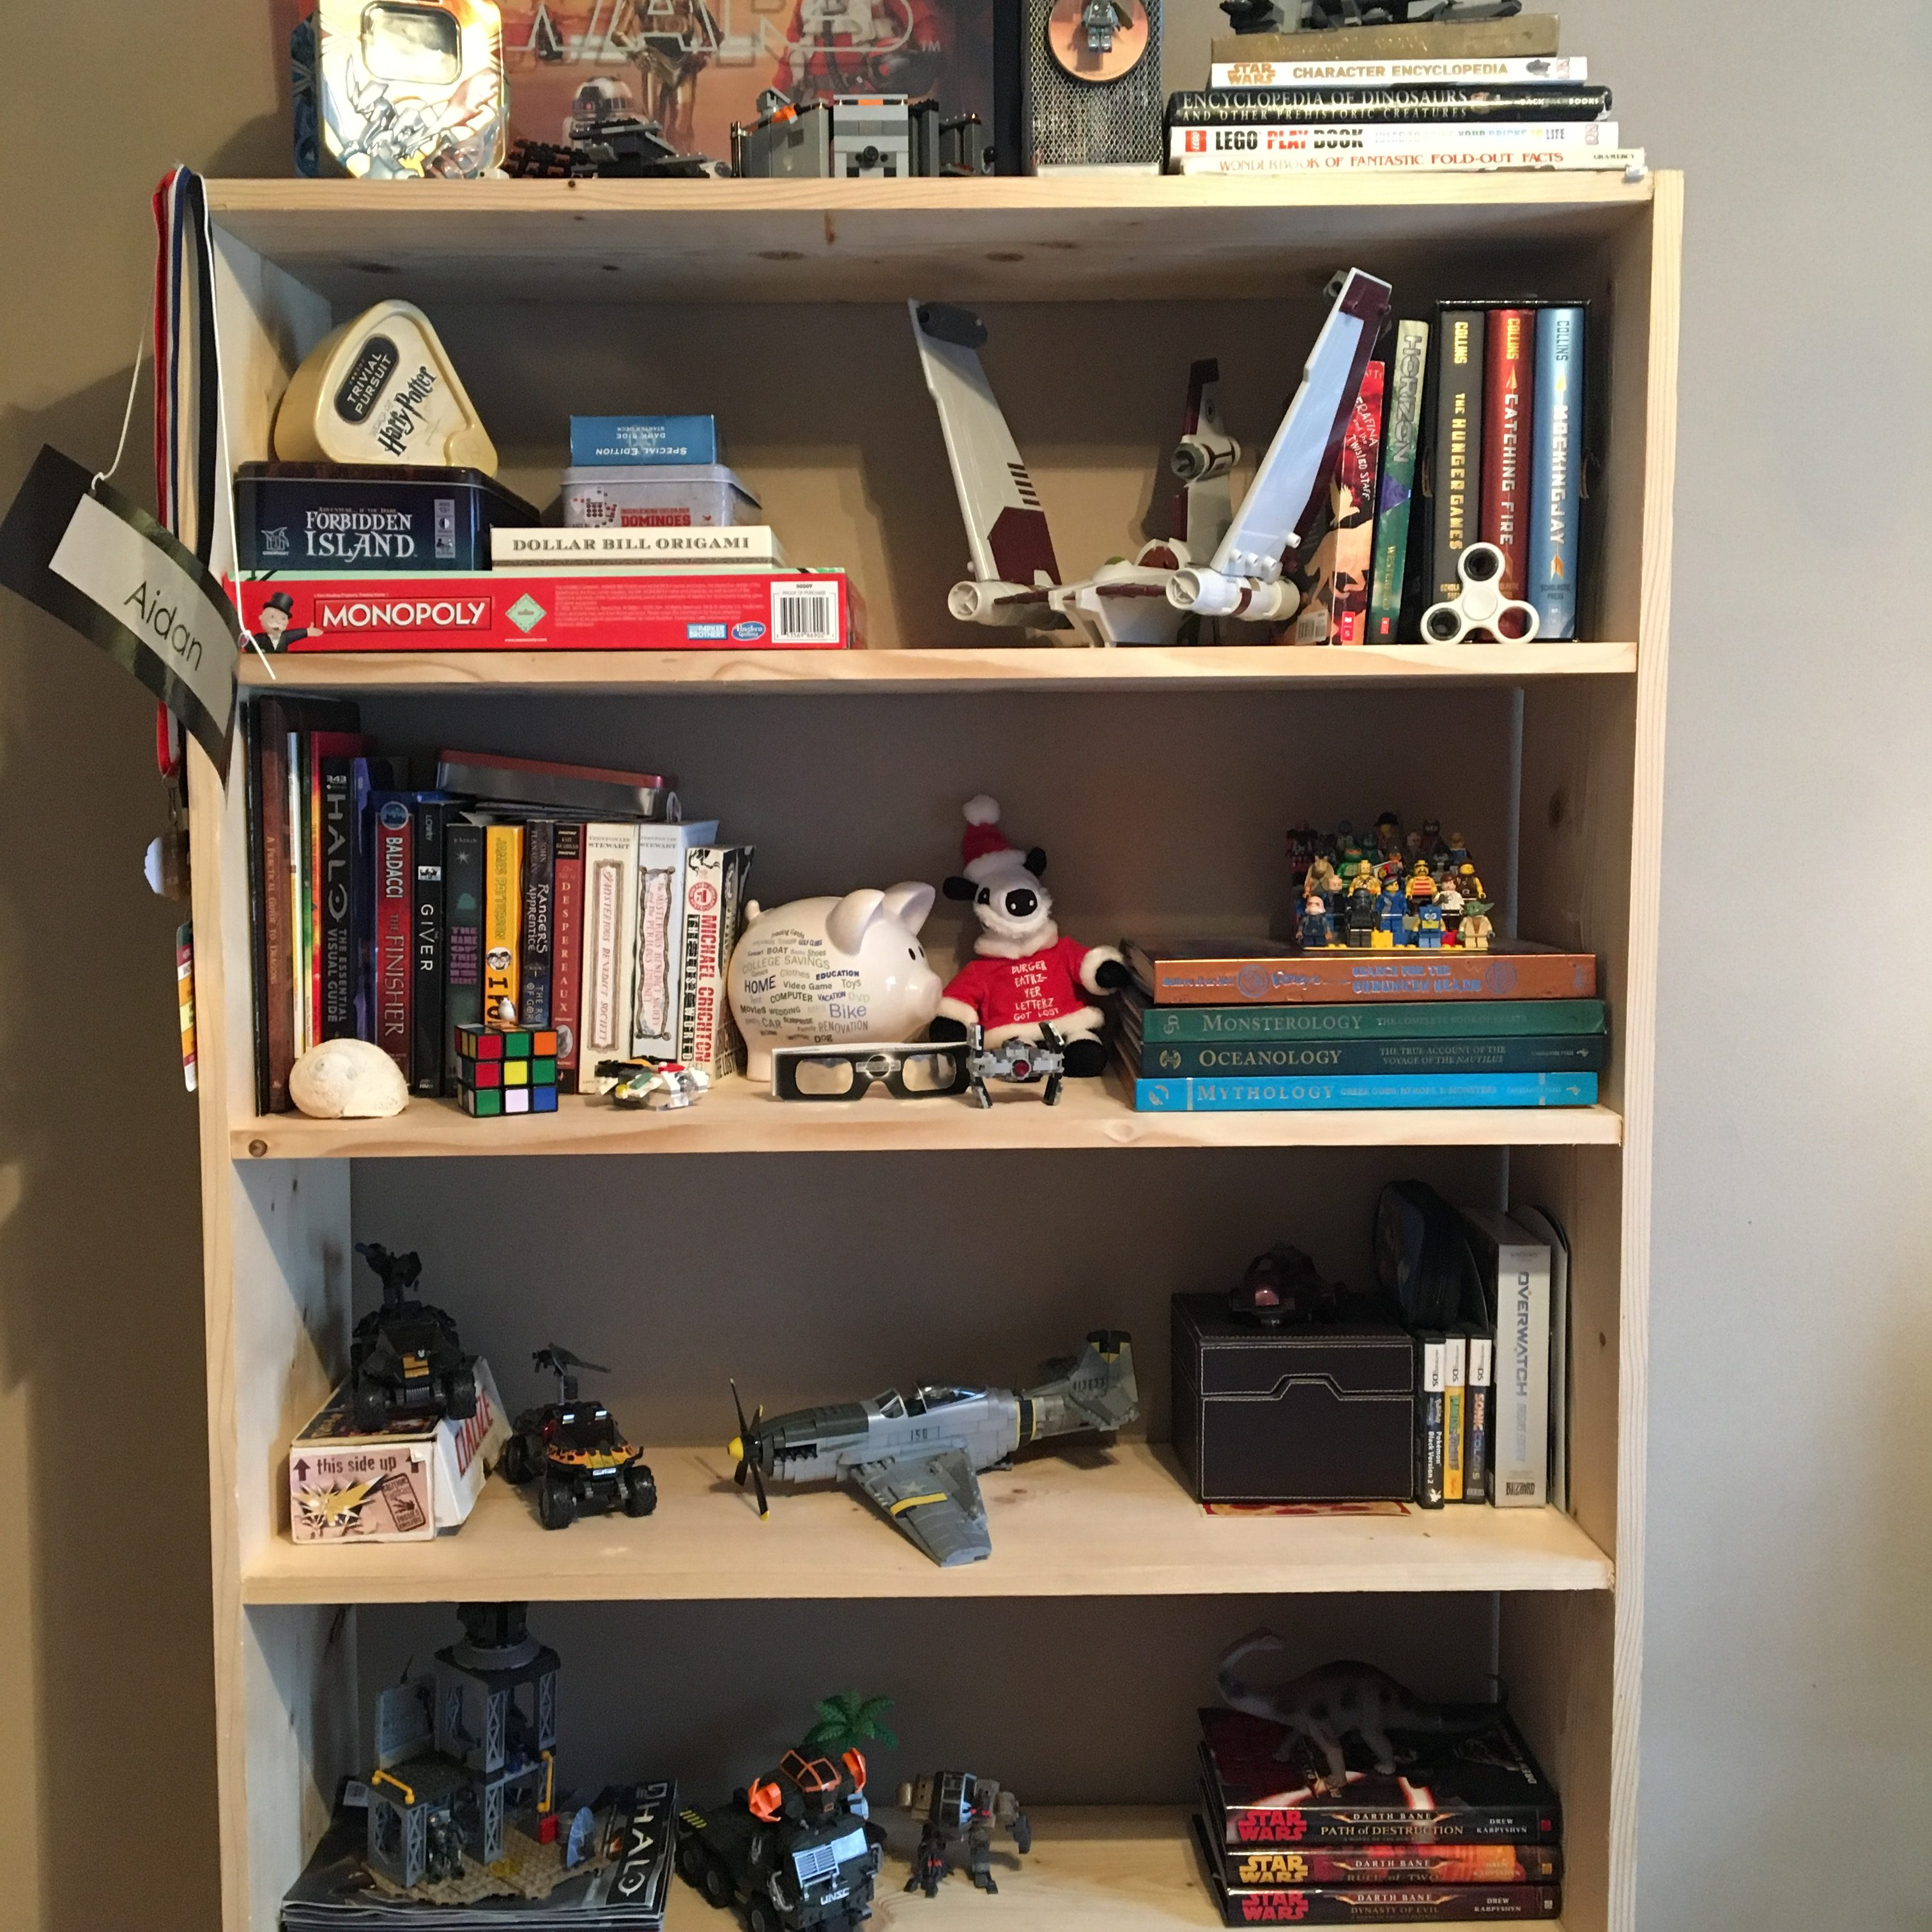 lego bookshelf shelf book academia edu office o